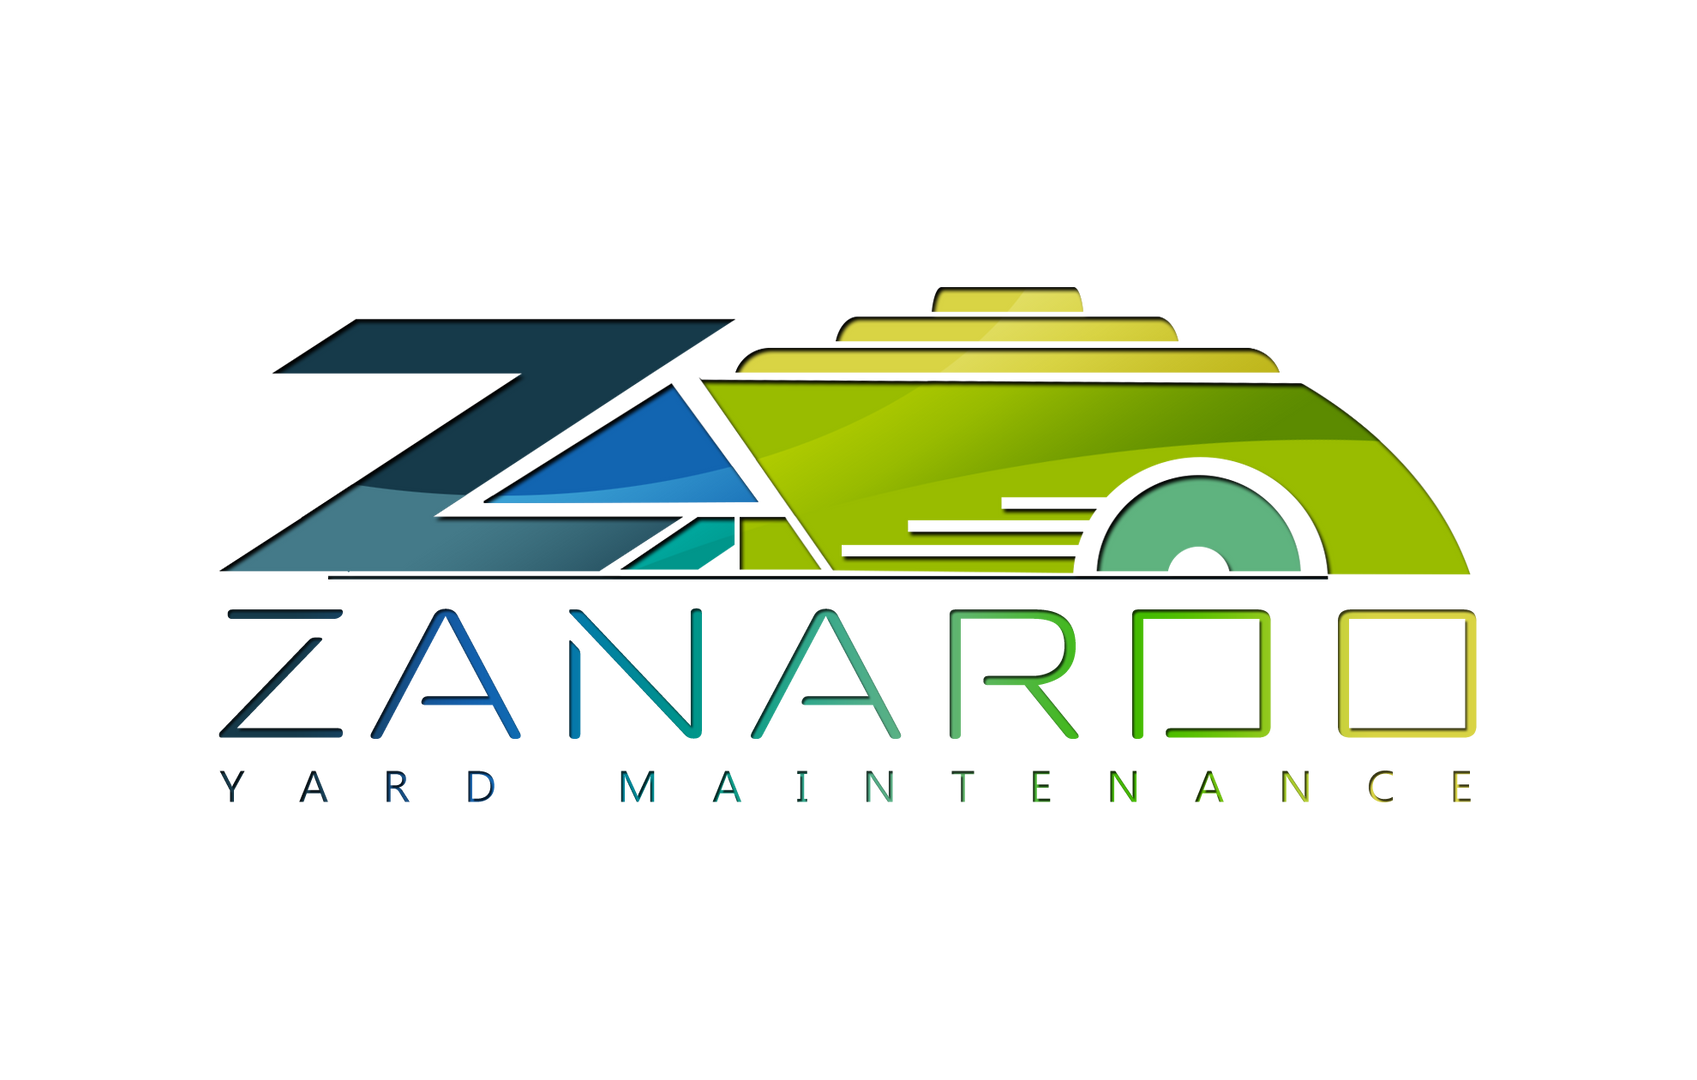 Zanardo Yard Maintenance